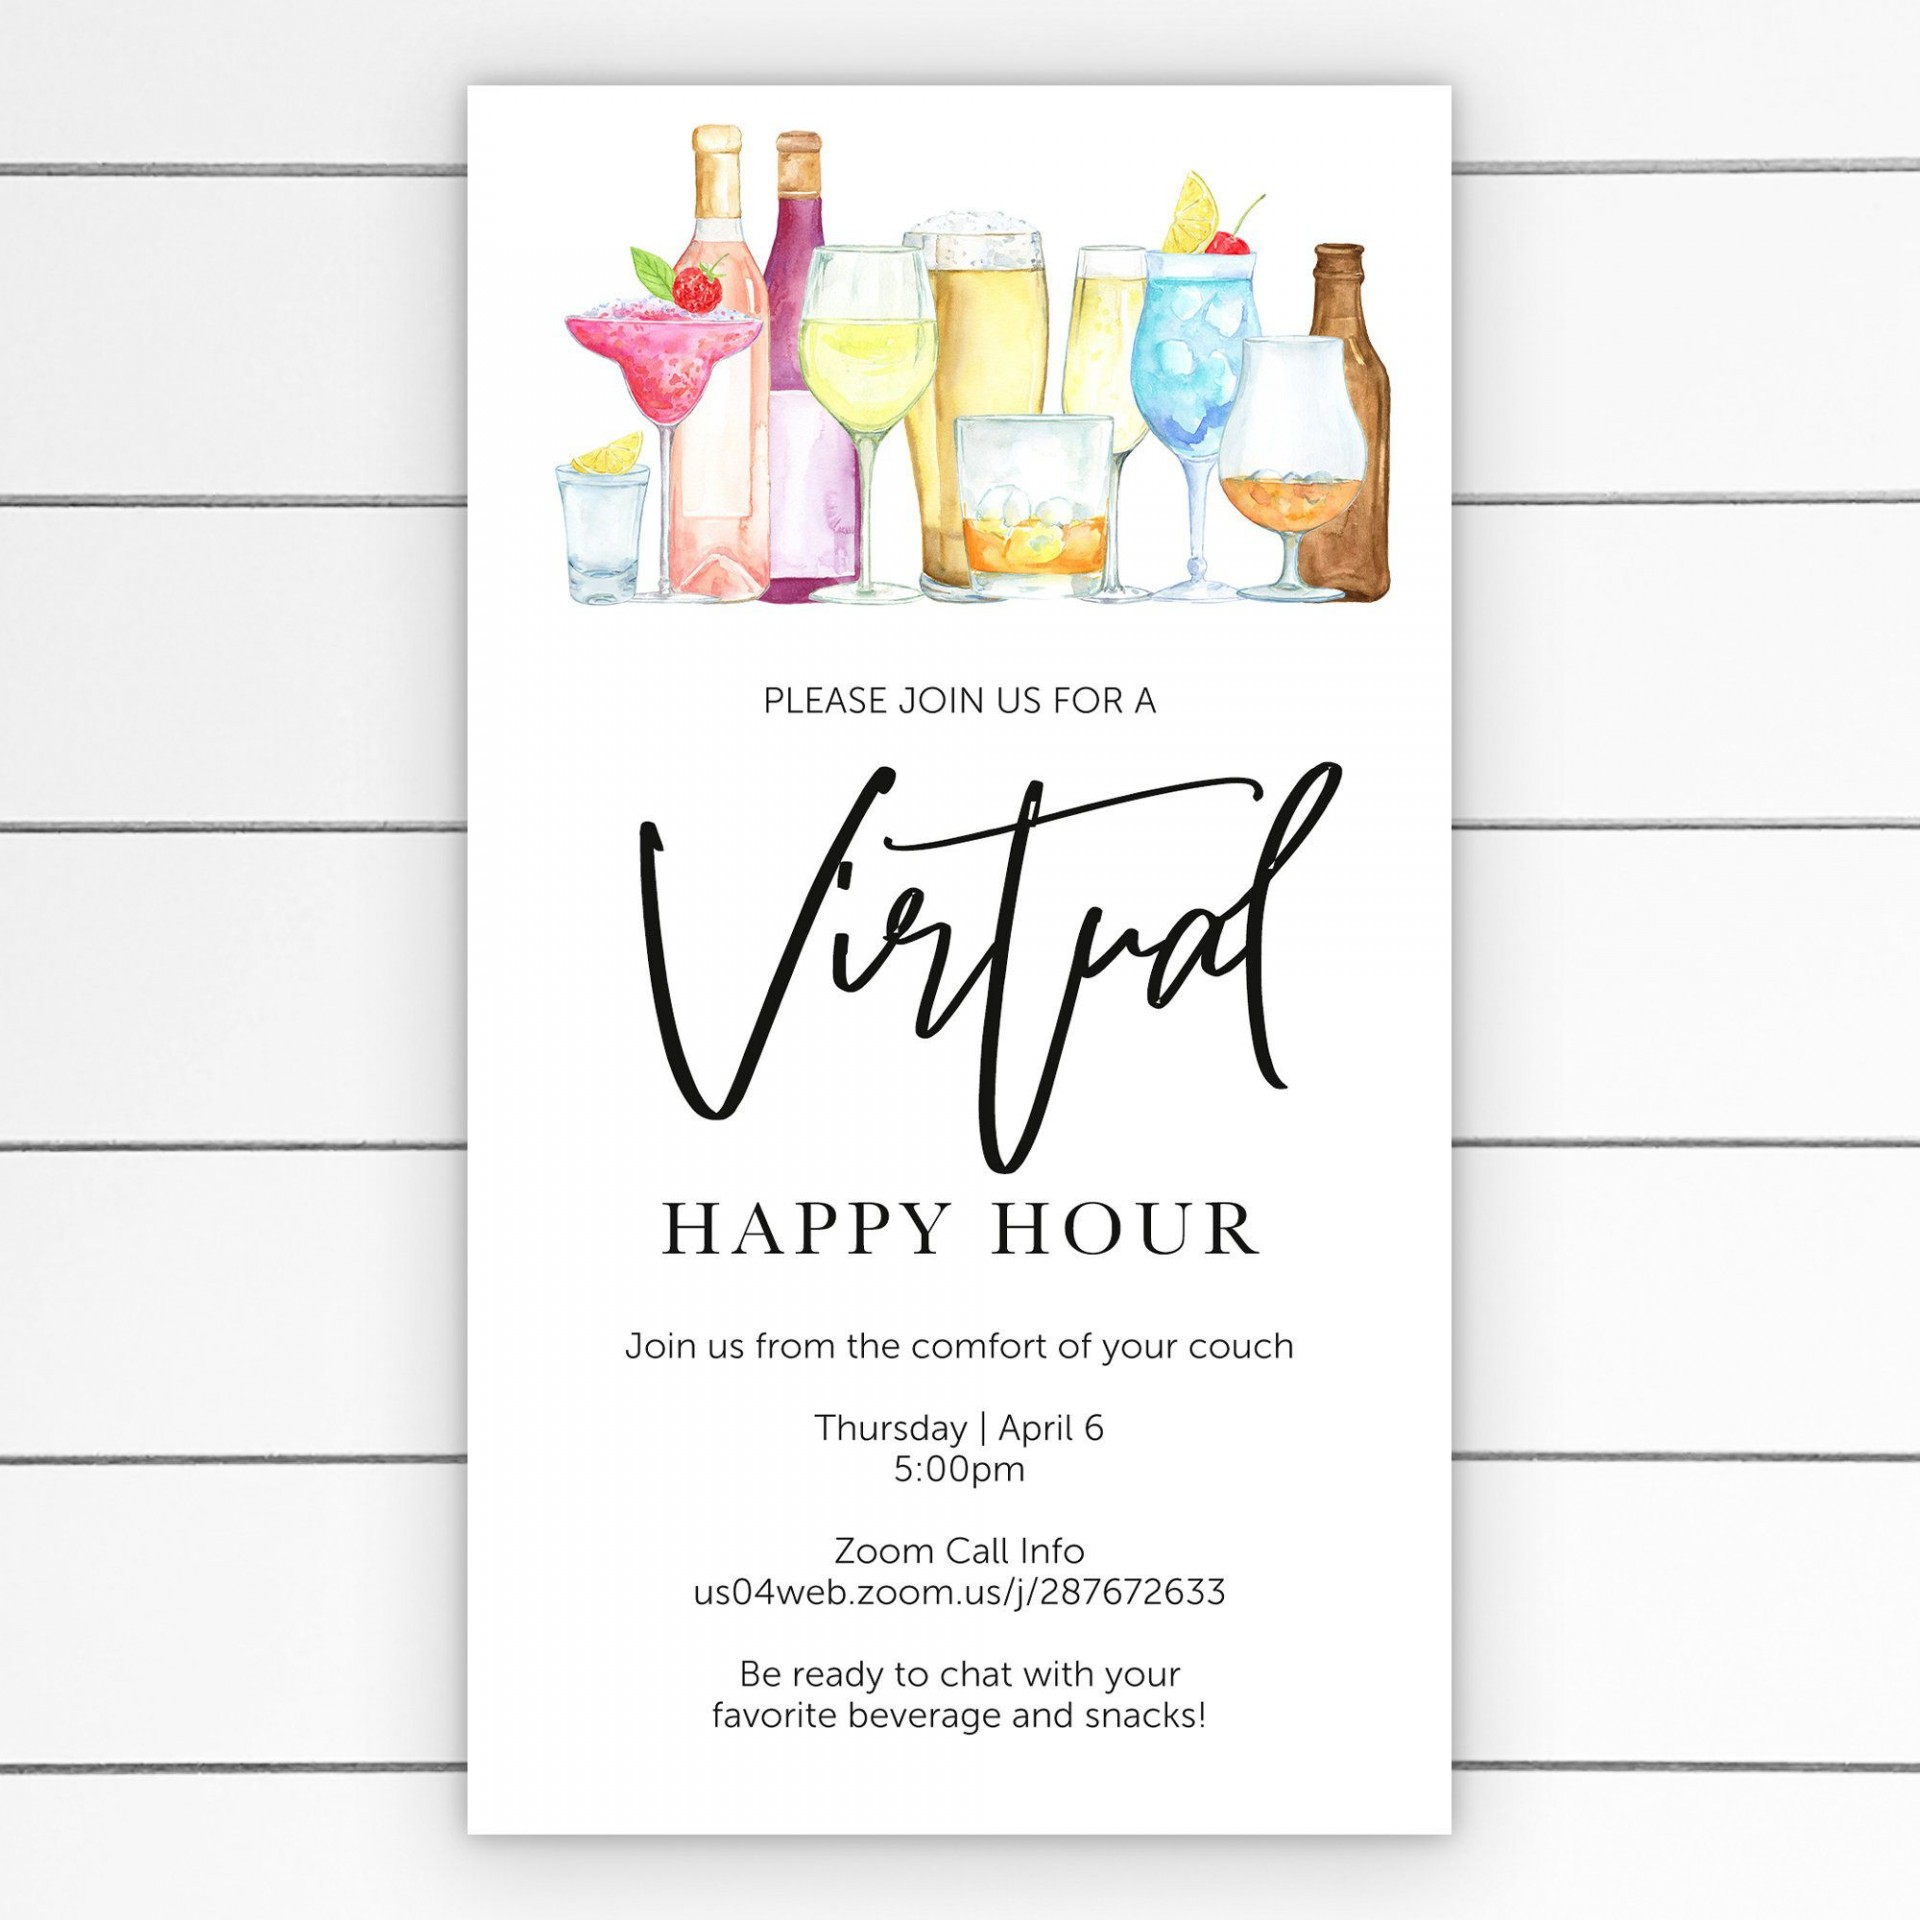 007 Unique Happy Hour Invitation Template Idea  Templates Free Word Farewell1920